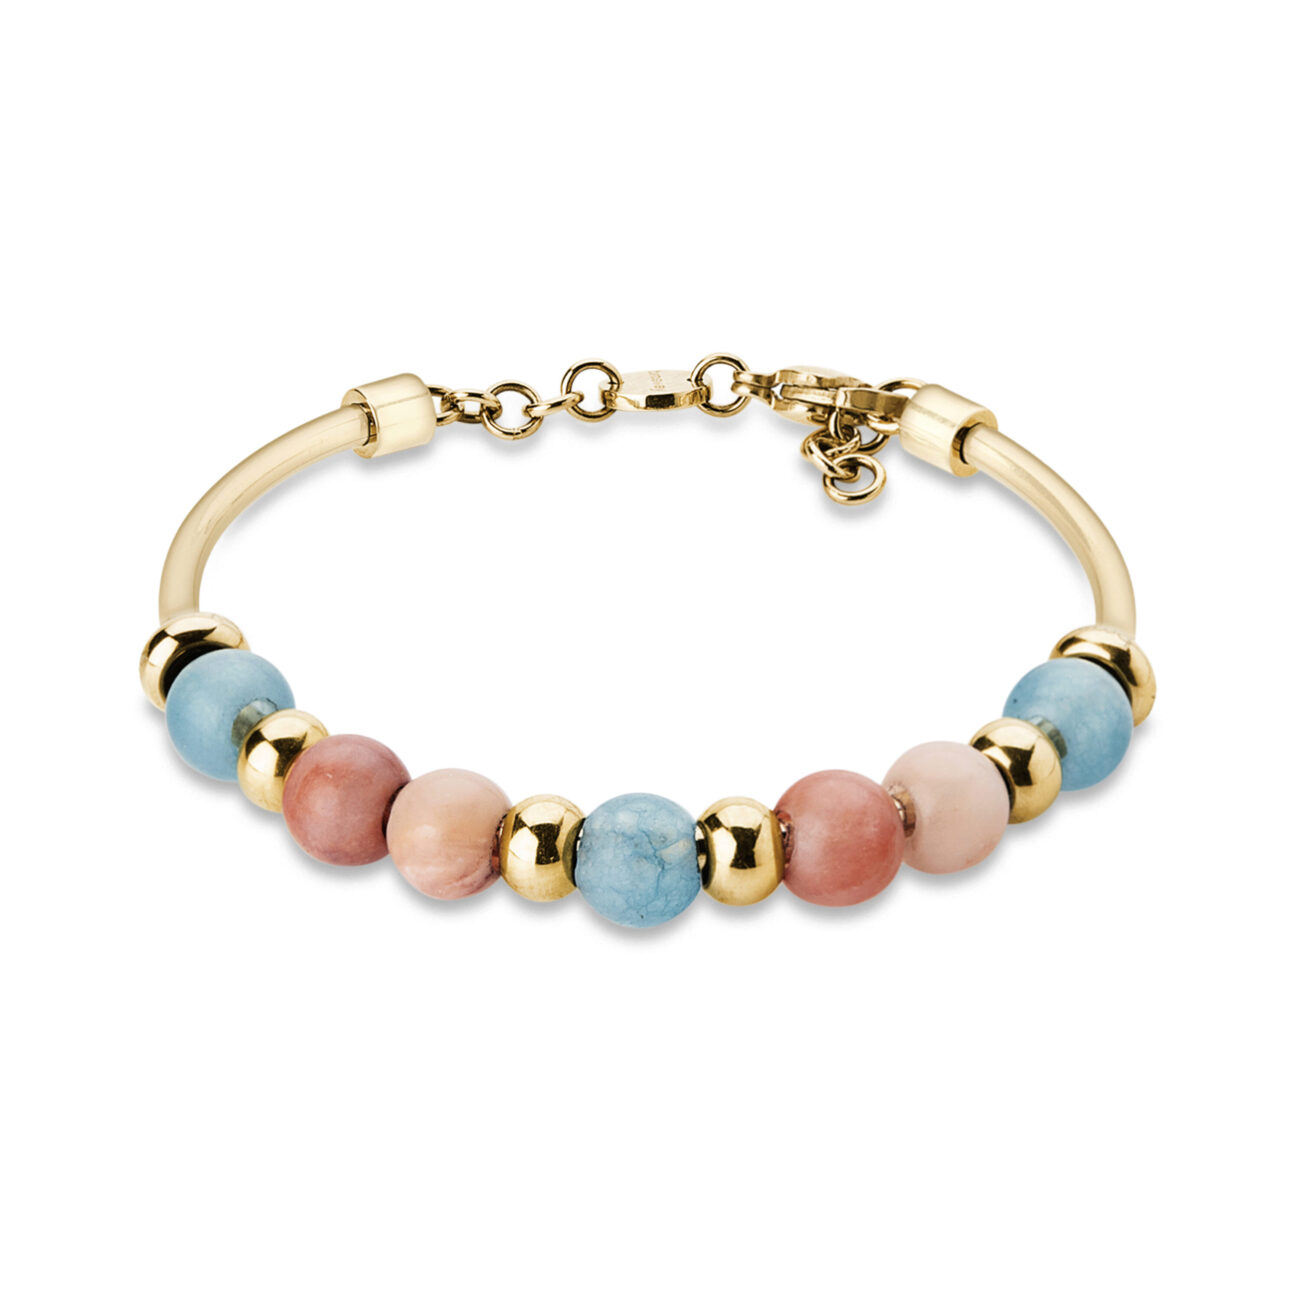 316L stainless steel and gold pvd bangle, with red aventurine and blue malay jade stones.